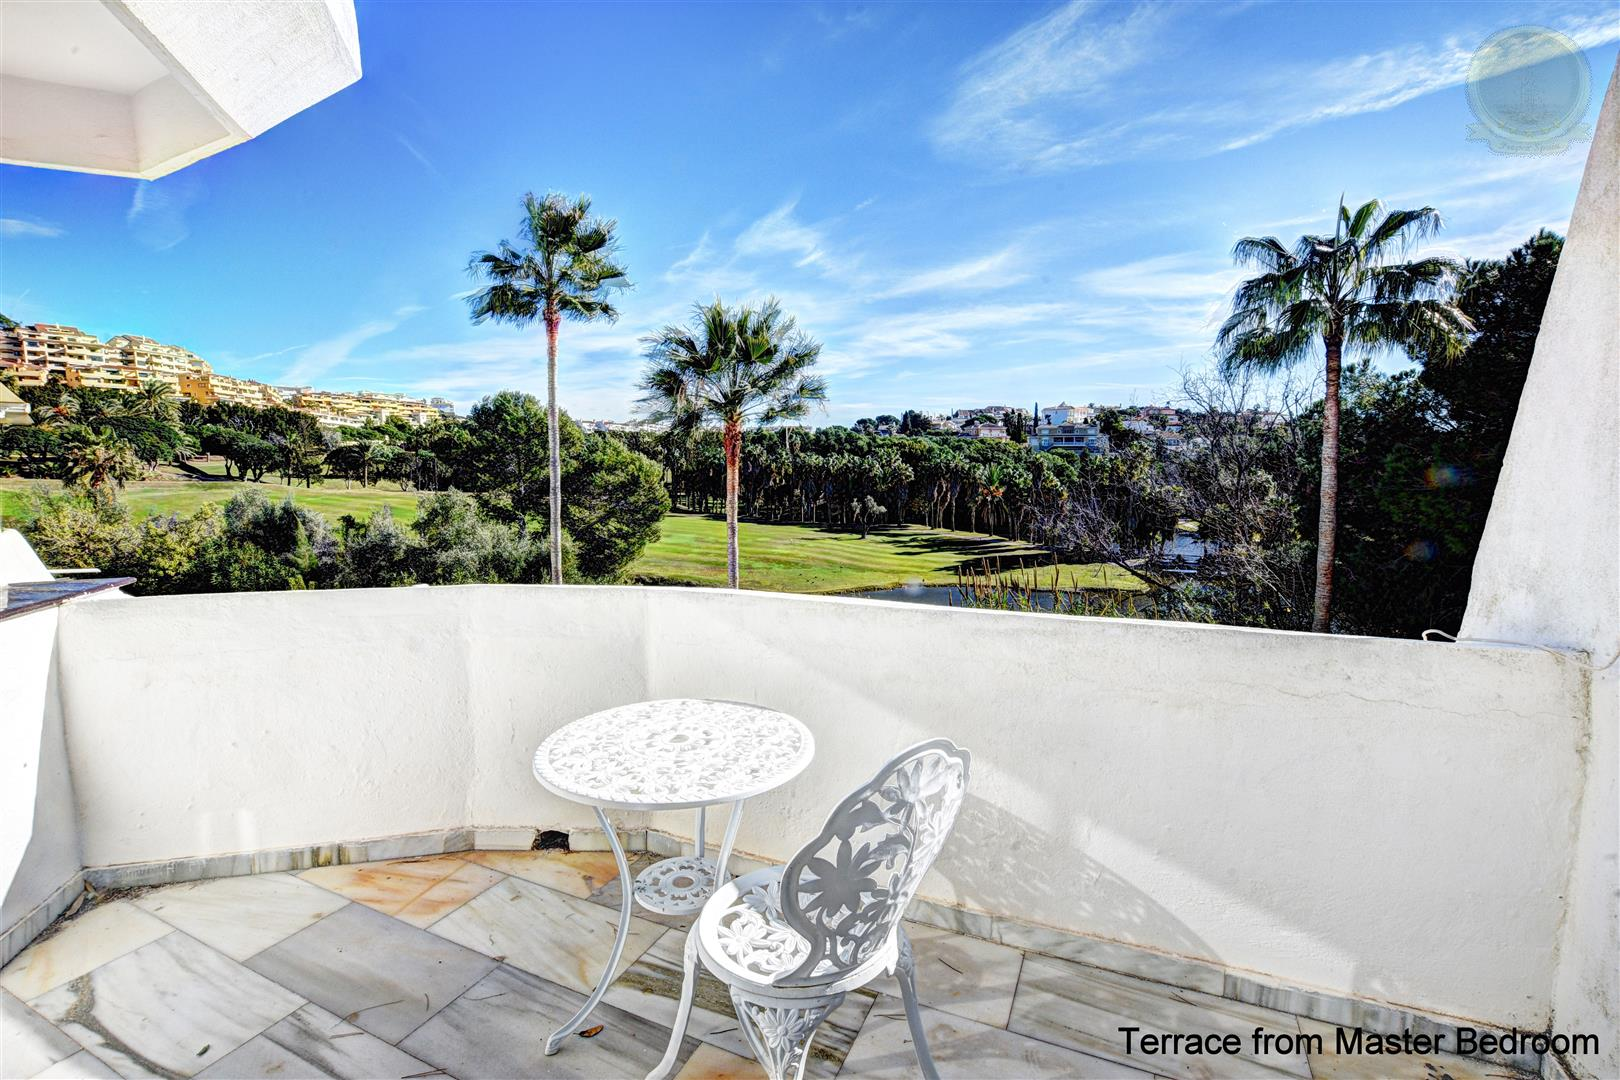 house for sale in Torrequebrada large terrace view